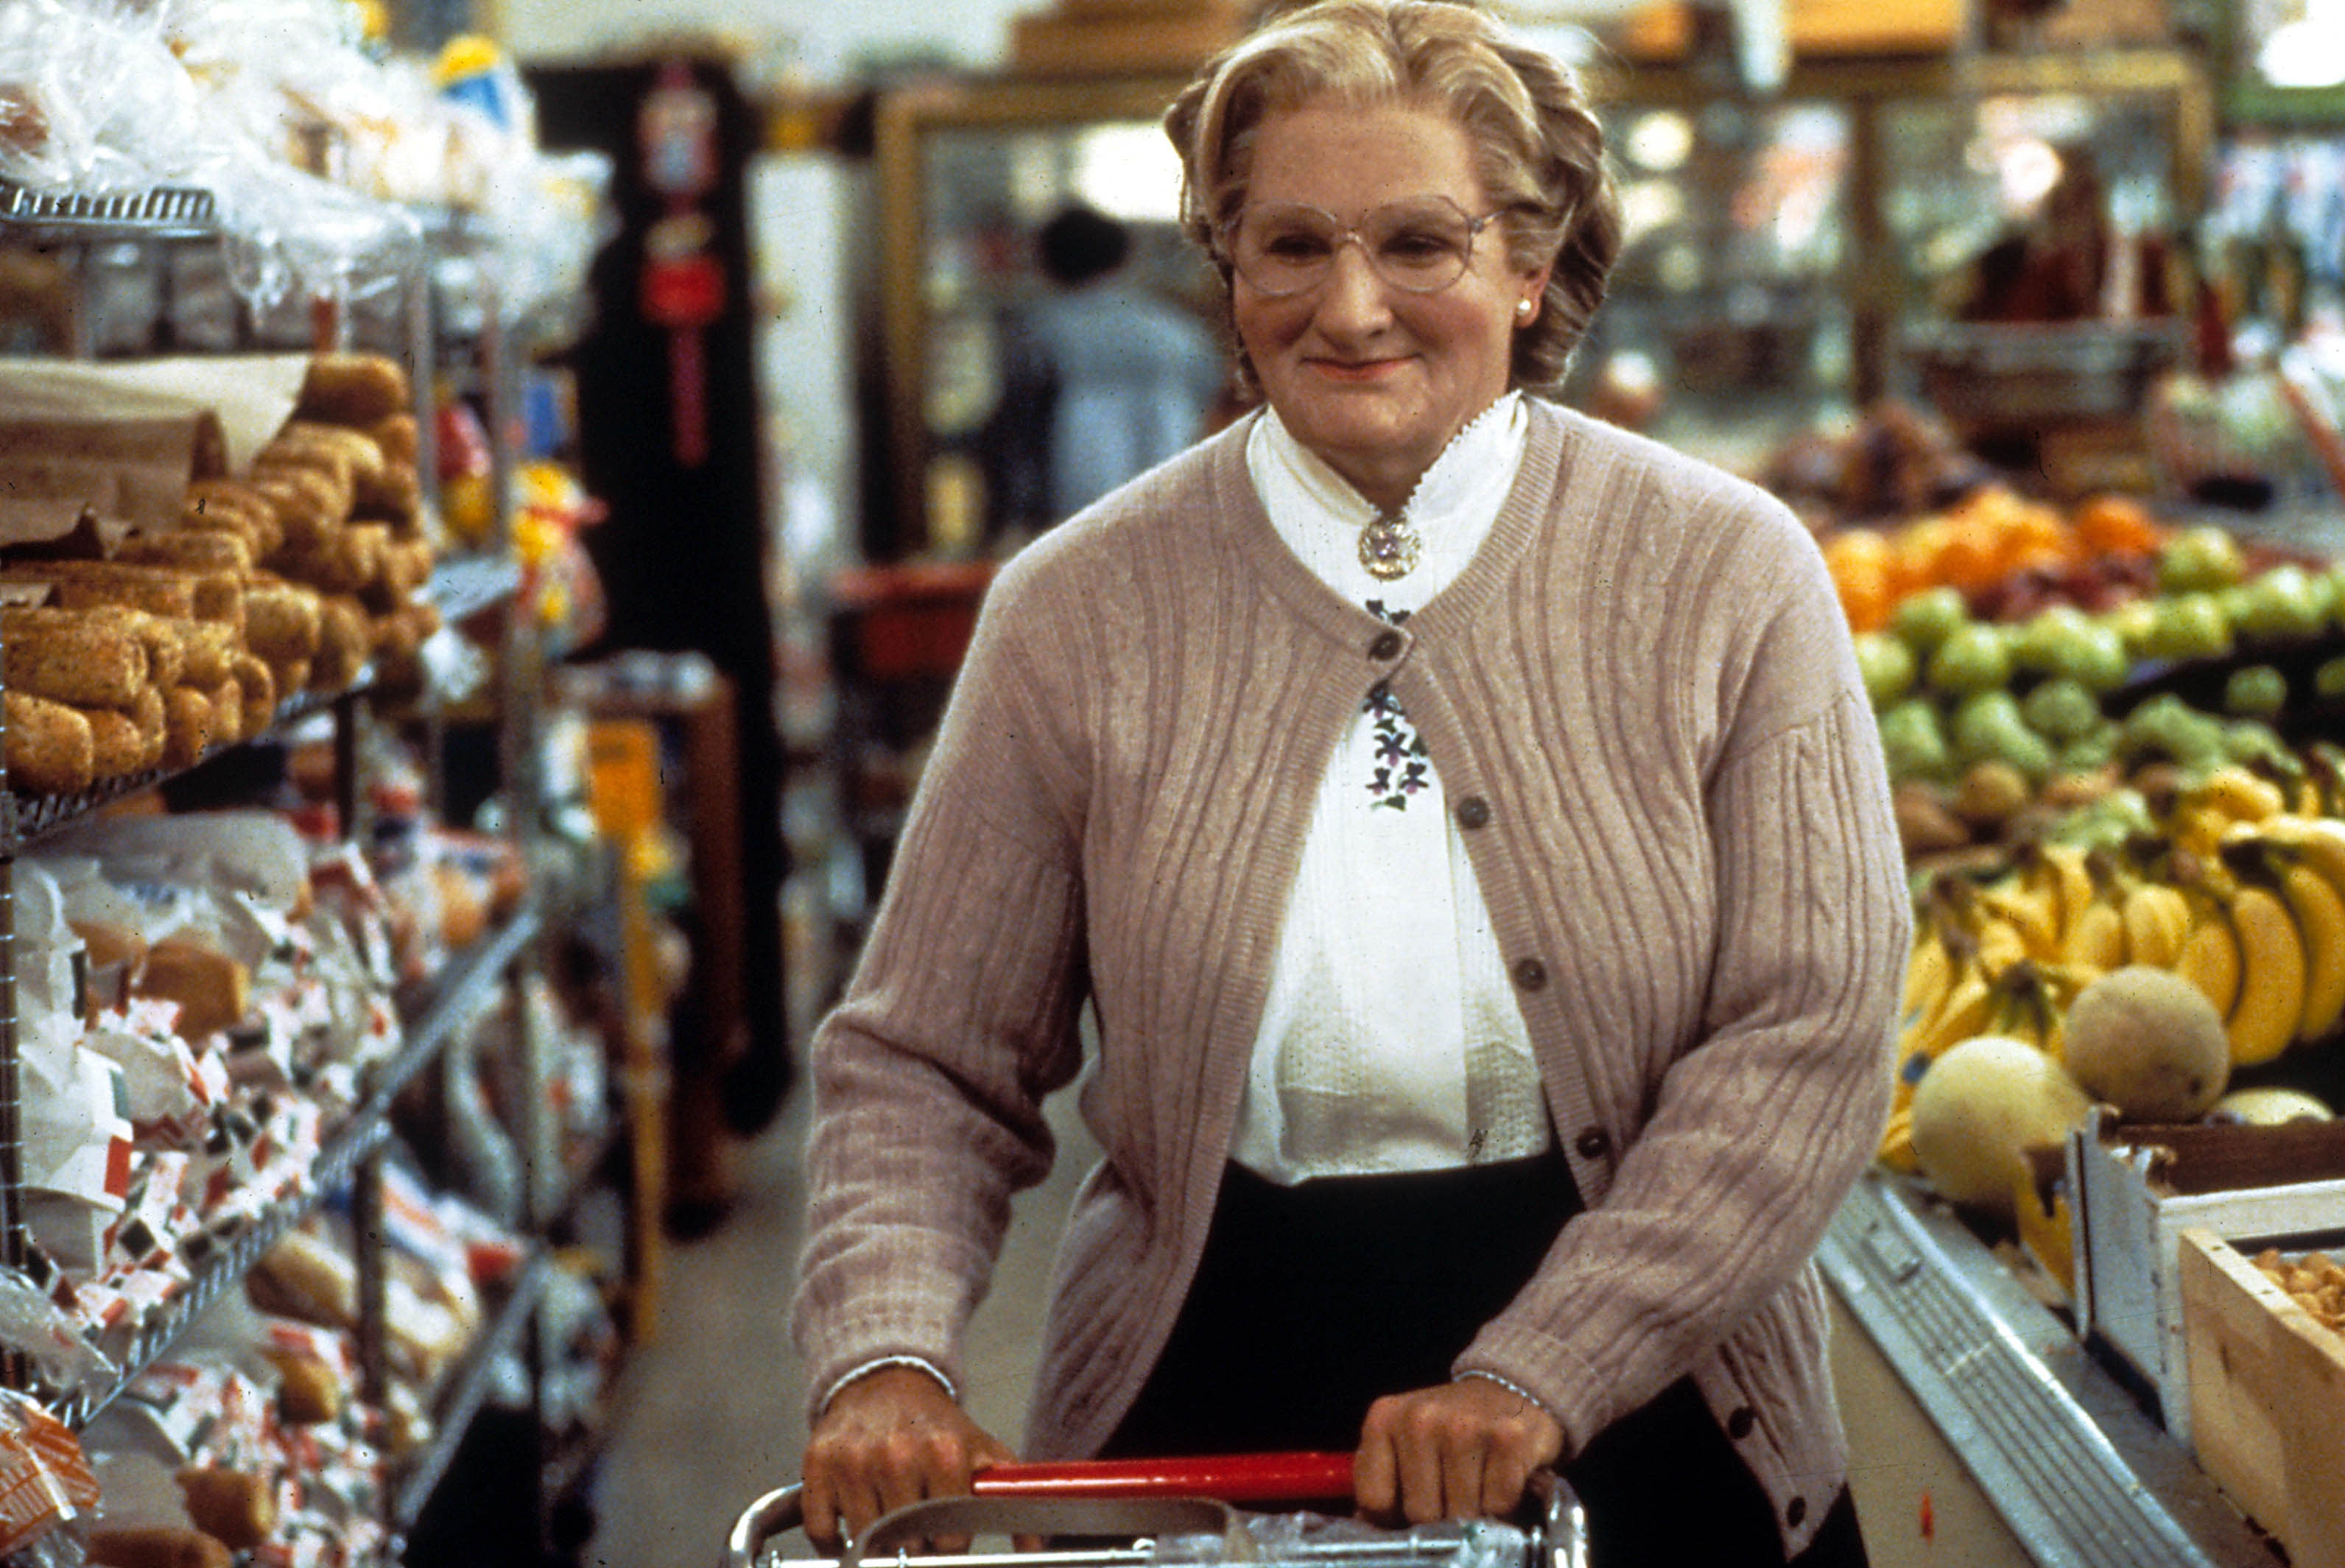 How Do I Wear A Cardigan Without Looking Like Mrs Doubtfire?